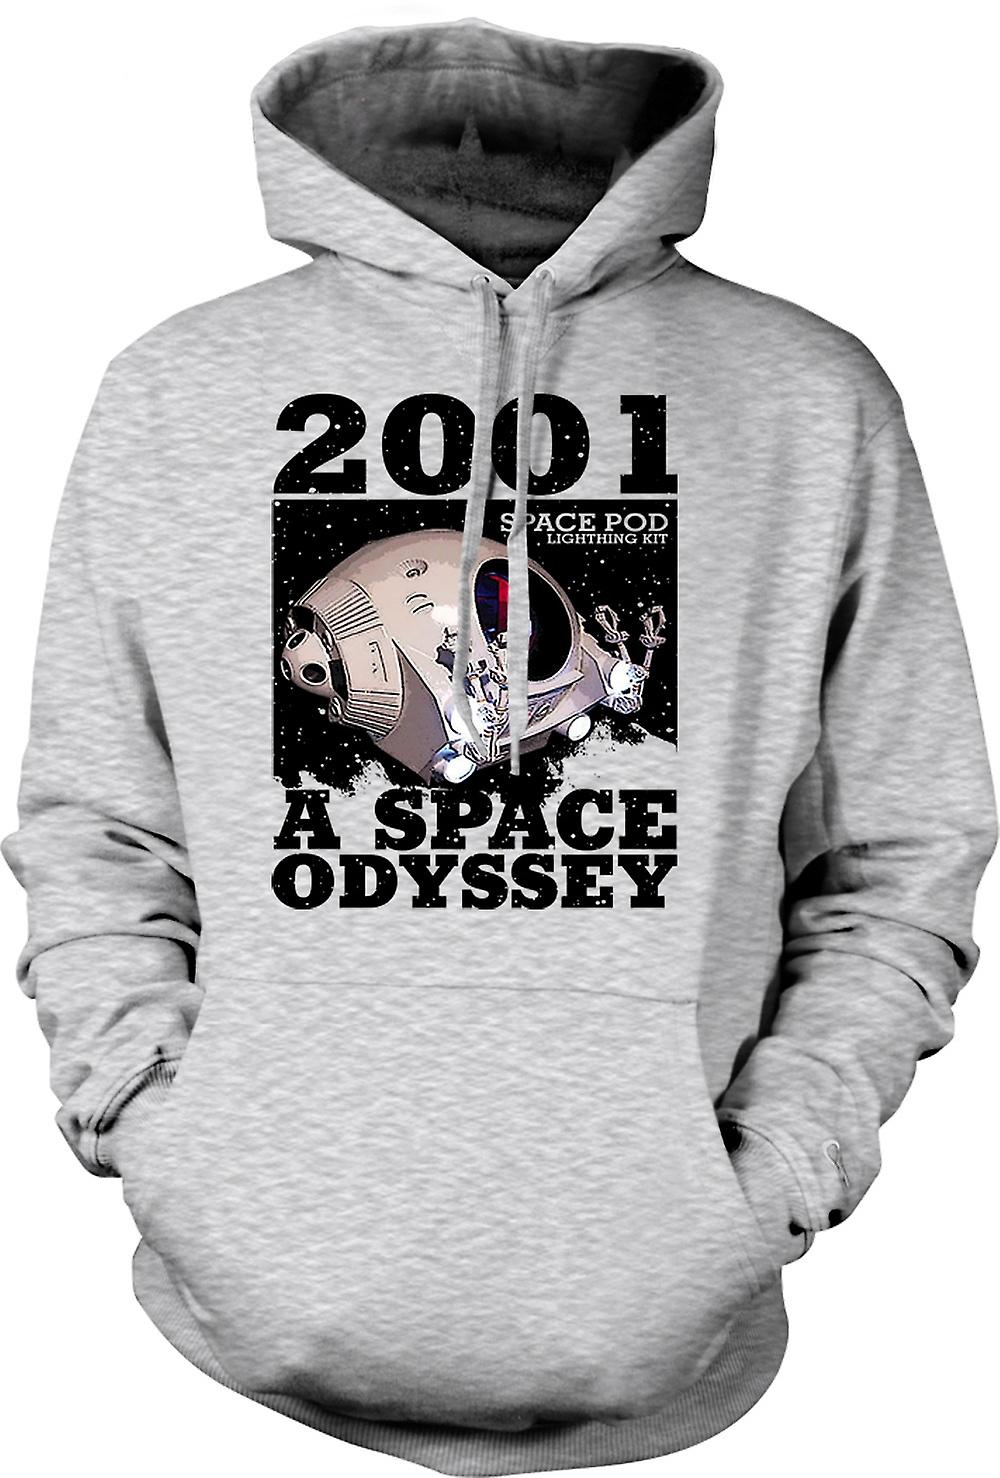 Mens-Hoodie - 2001-Space Odyssey - Space Pod